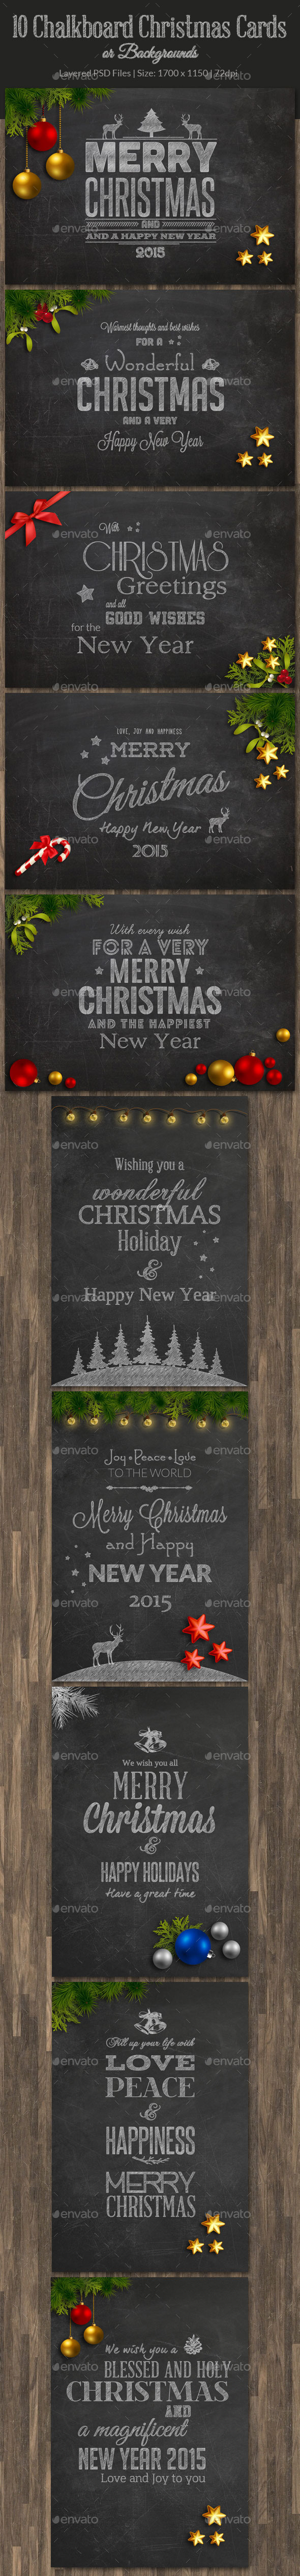 GraphicRiver 10 Christmas Chalkboard Cards 9497475